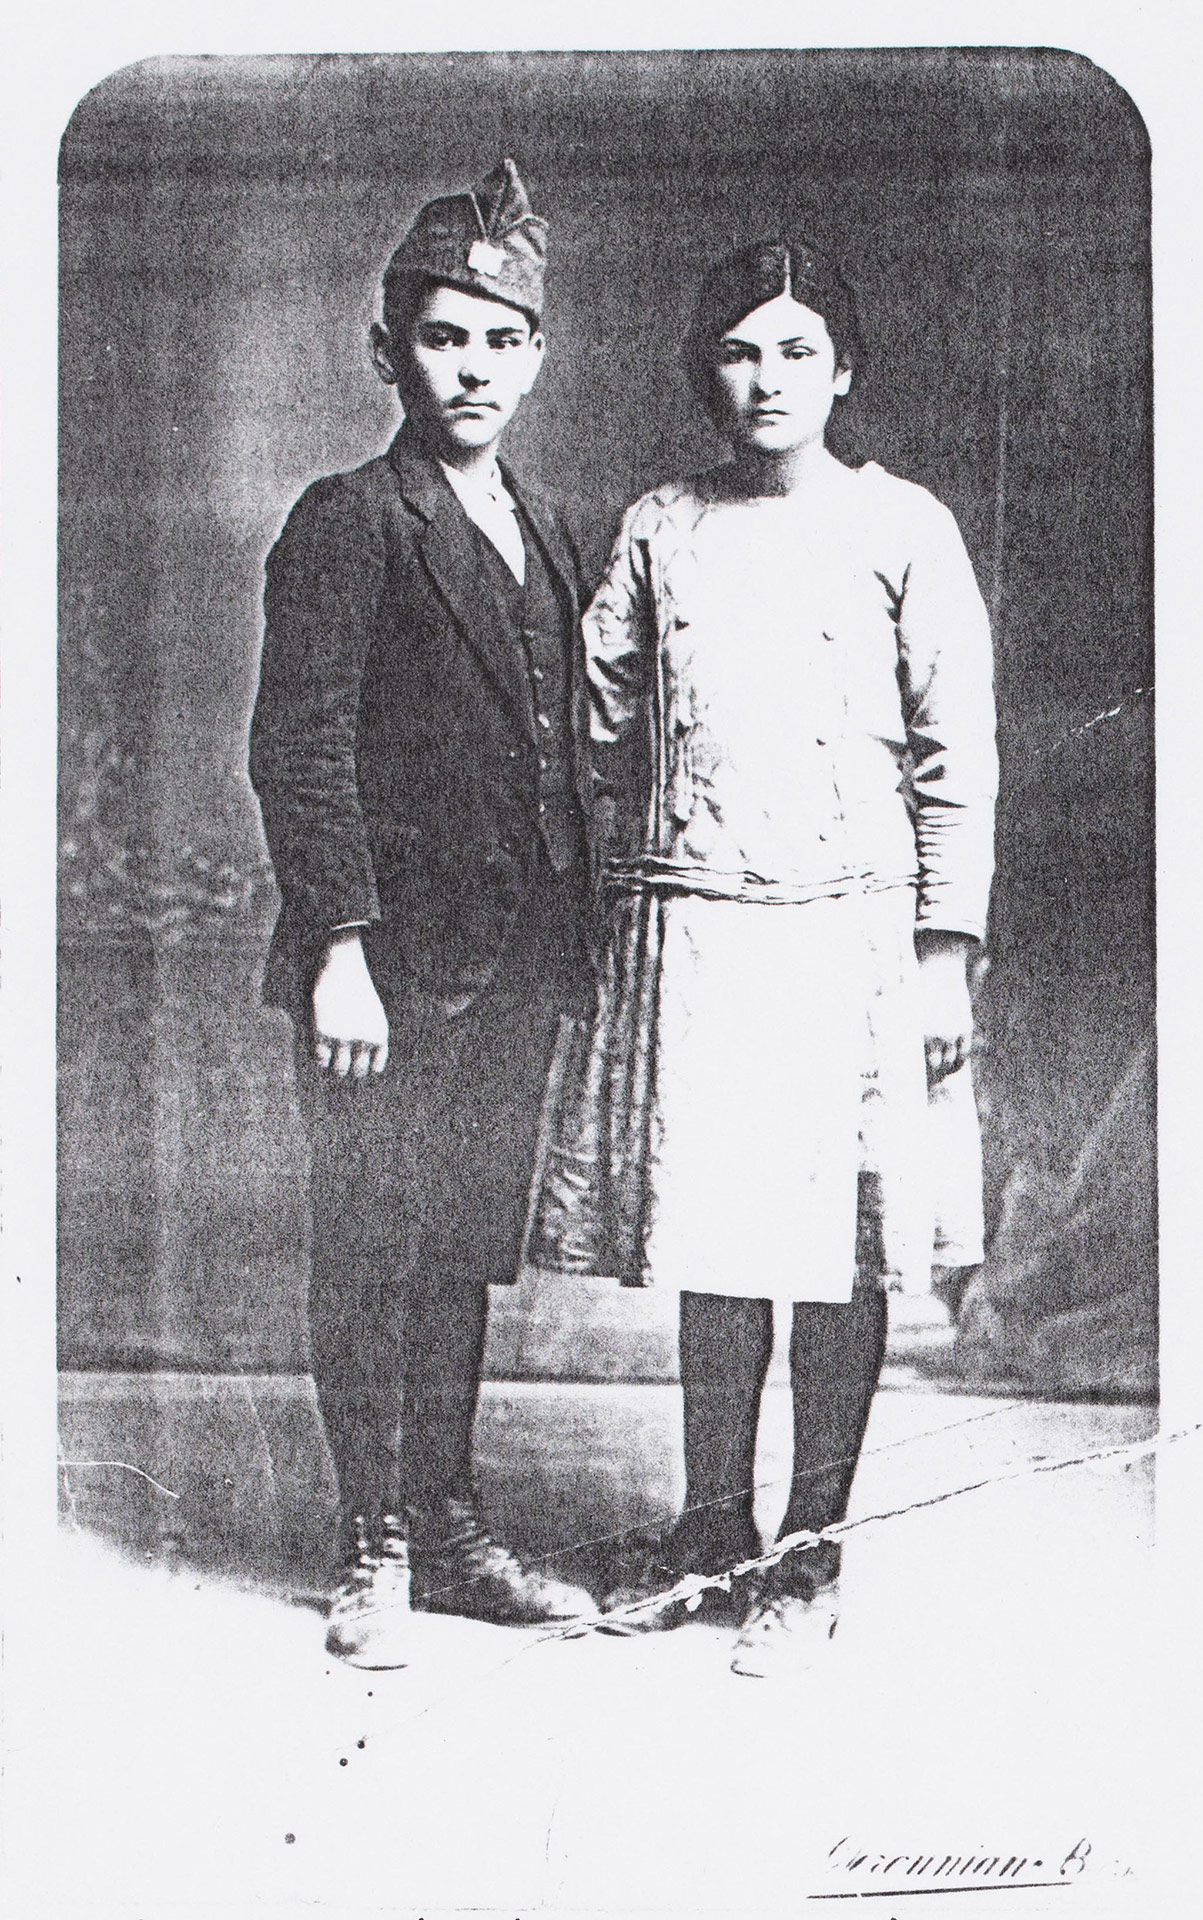 A young teenage boy and girl stand together.